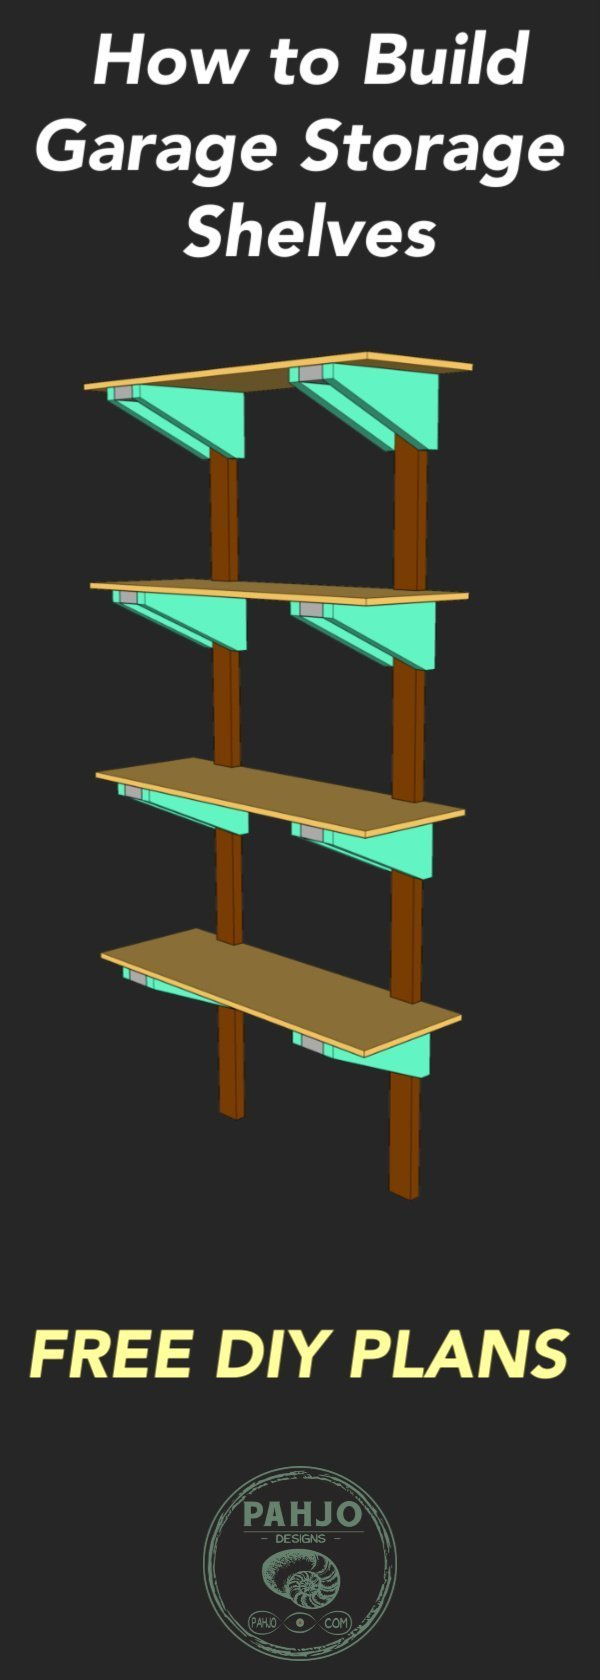 How To Build Sturdy Garage Shelves From 2x4s Pahjo Designs